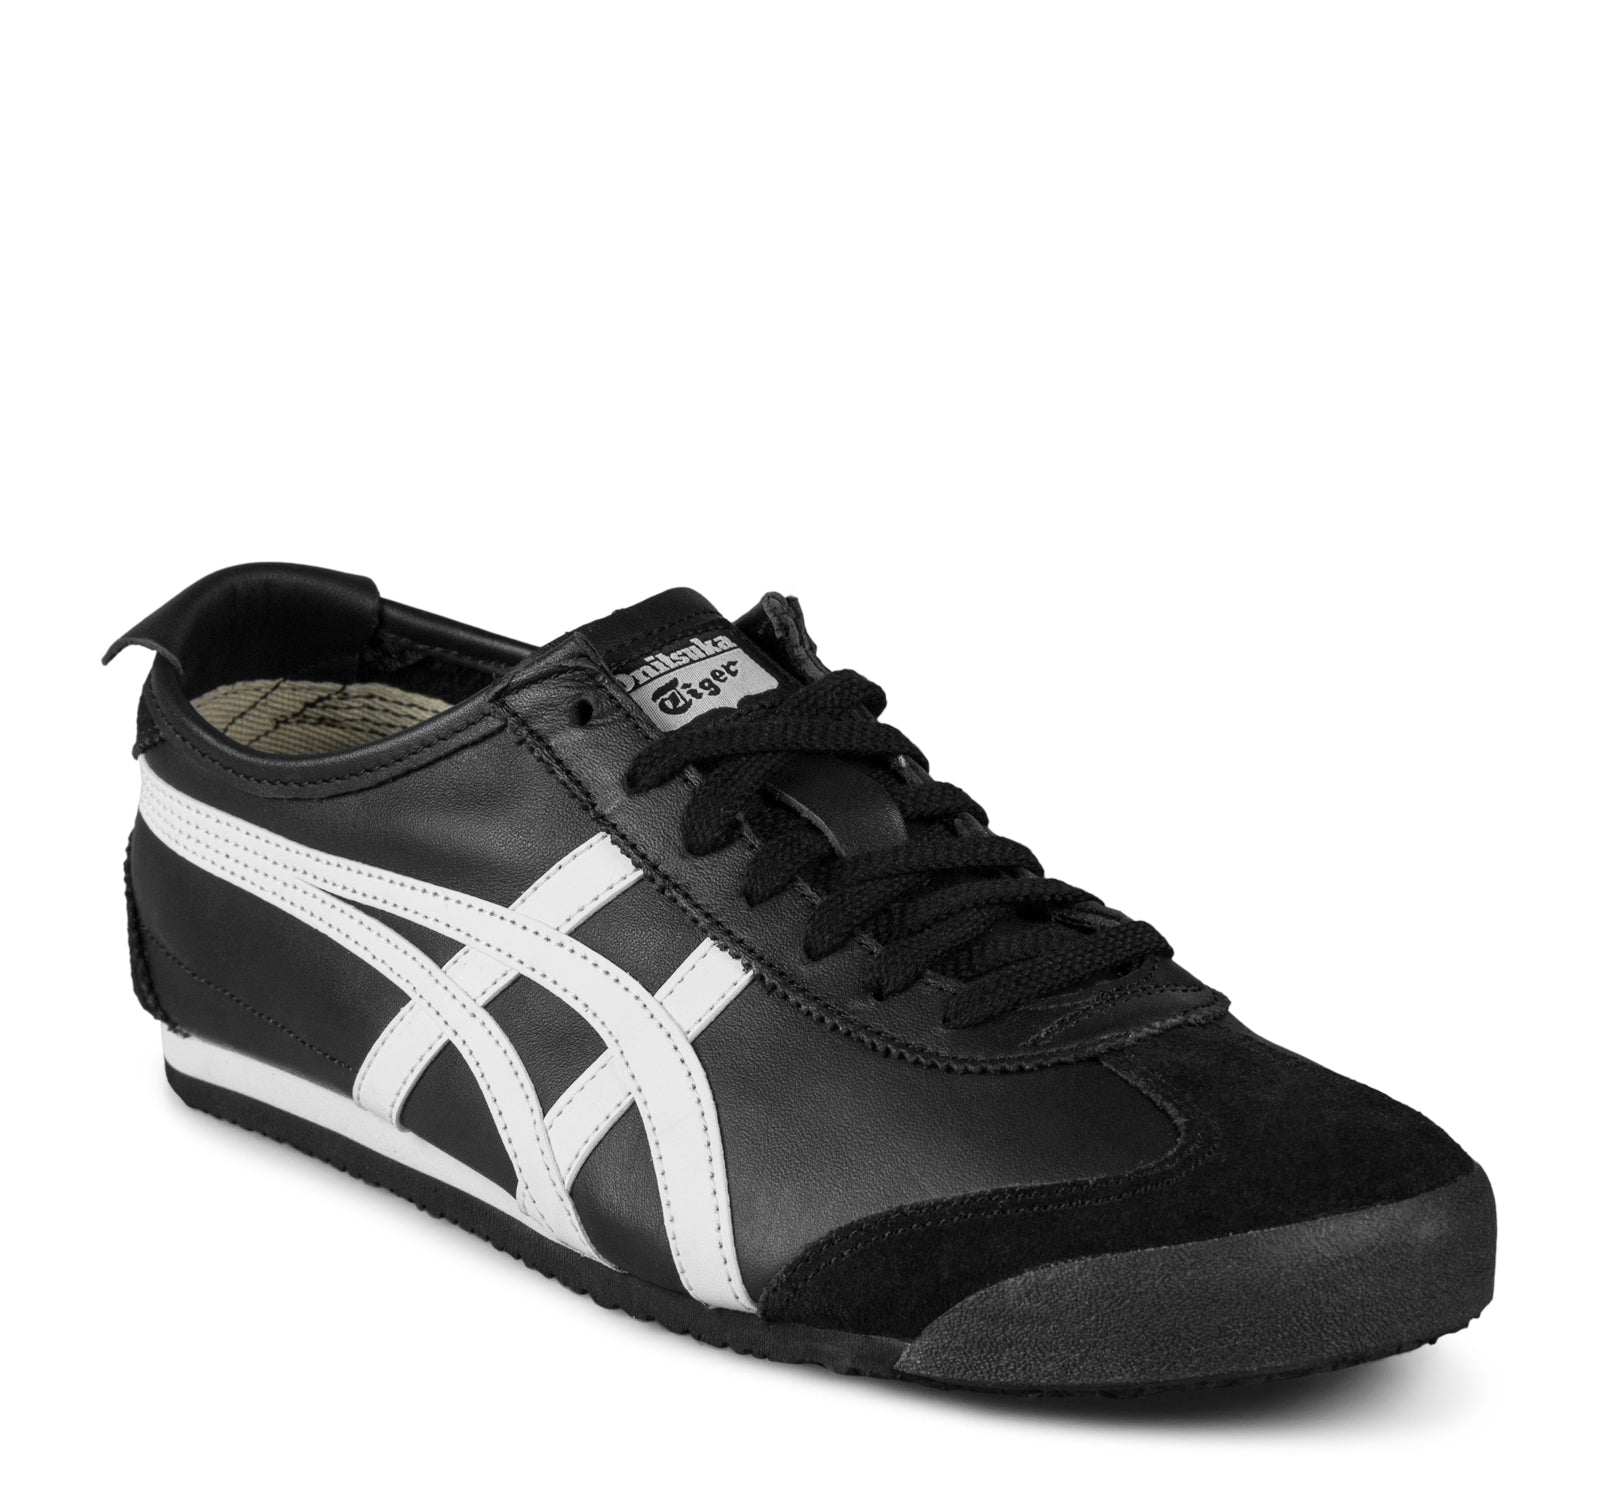 sports shoes cf55b a75fc Onitsuka Tiger Mexico 66 Sneaker in Black and White – On The ...